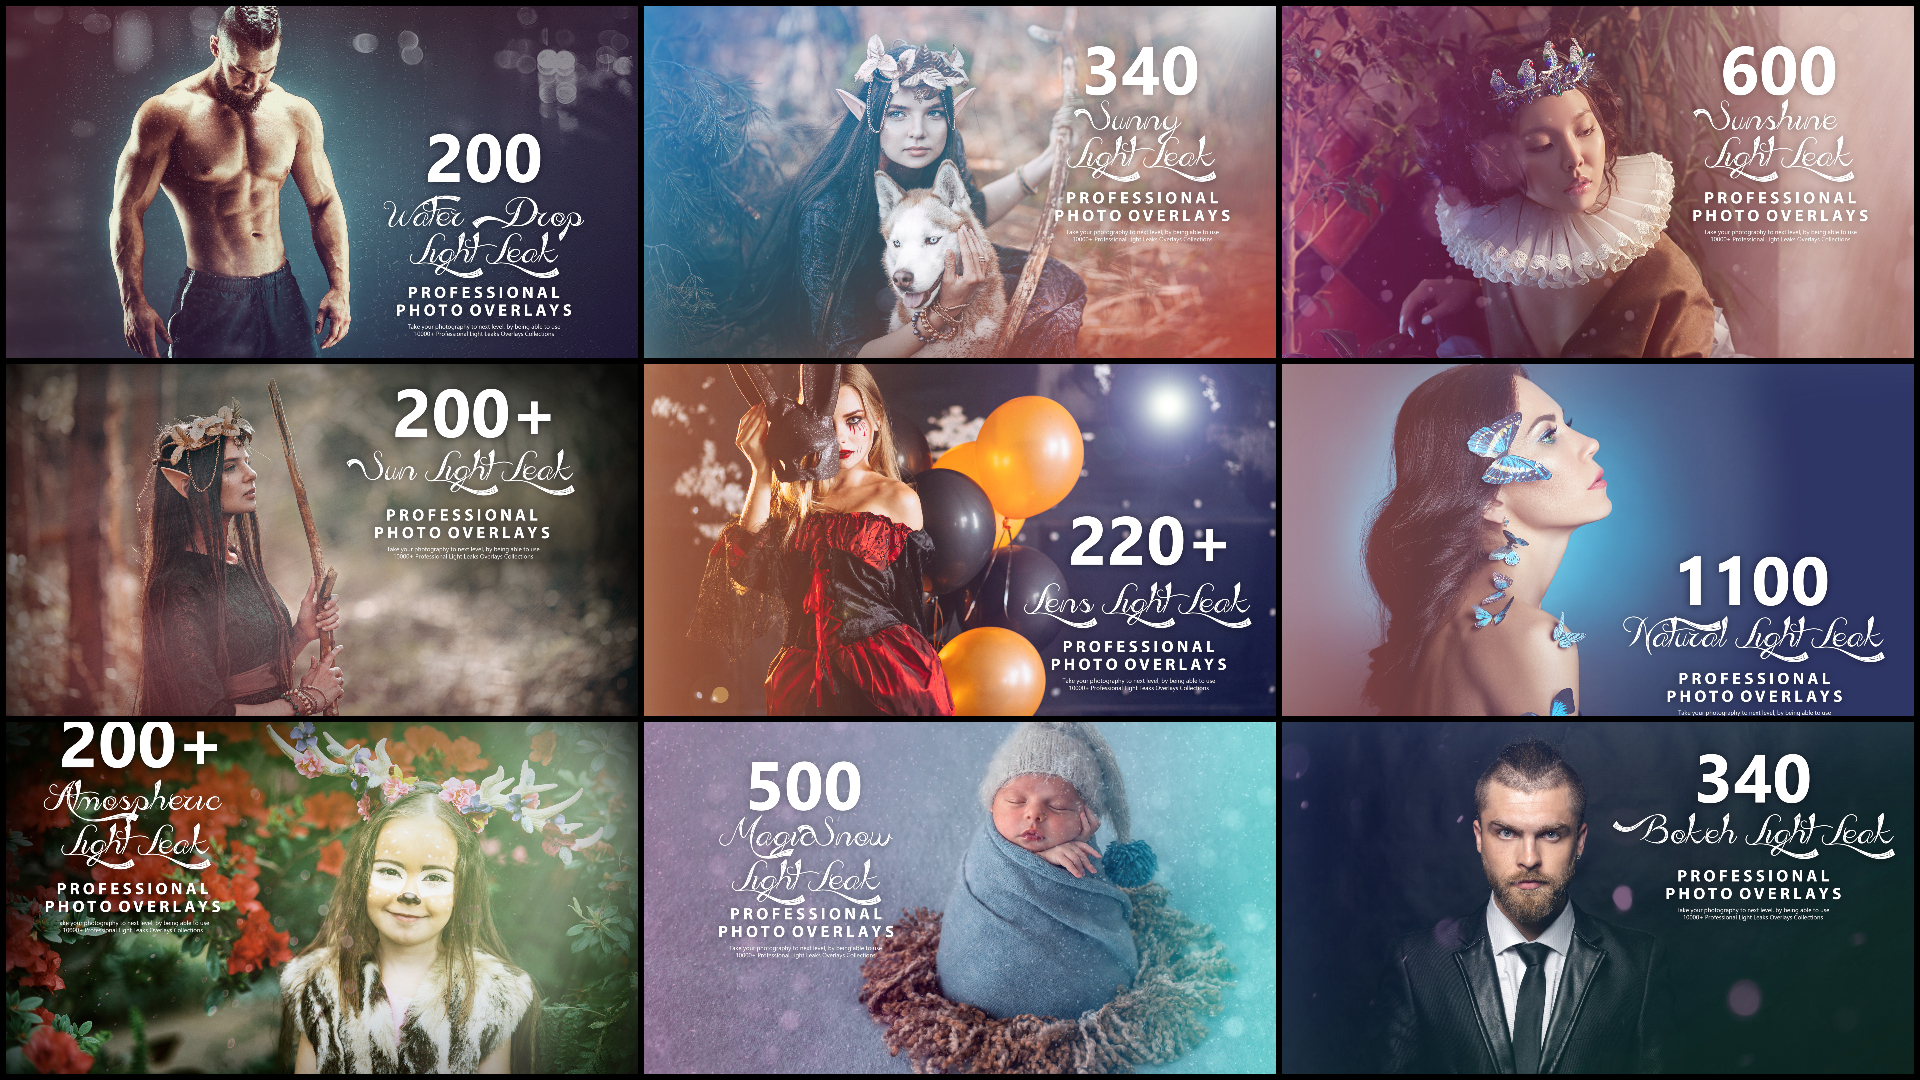 Design, Photo & Graphics Software, The Professional Graphic Bundle (70,000+ Resources) Screenshot